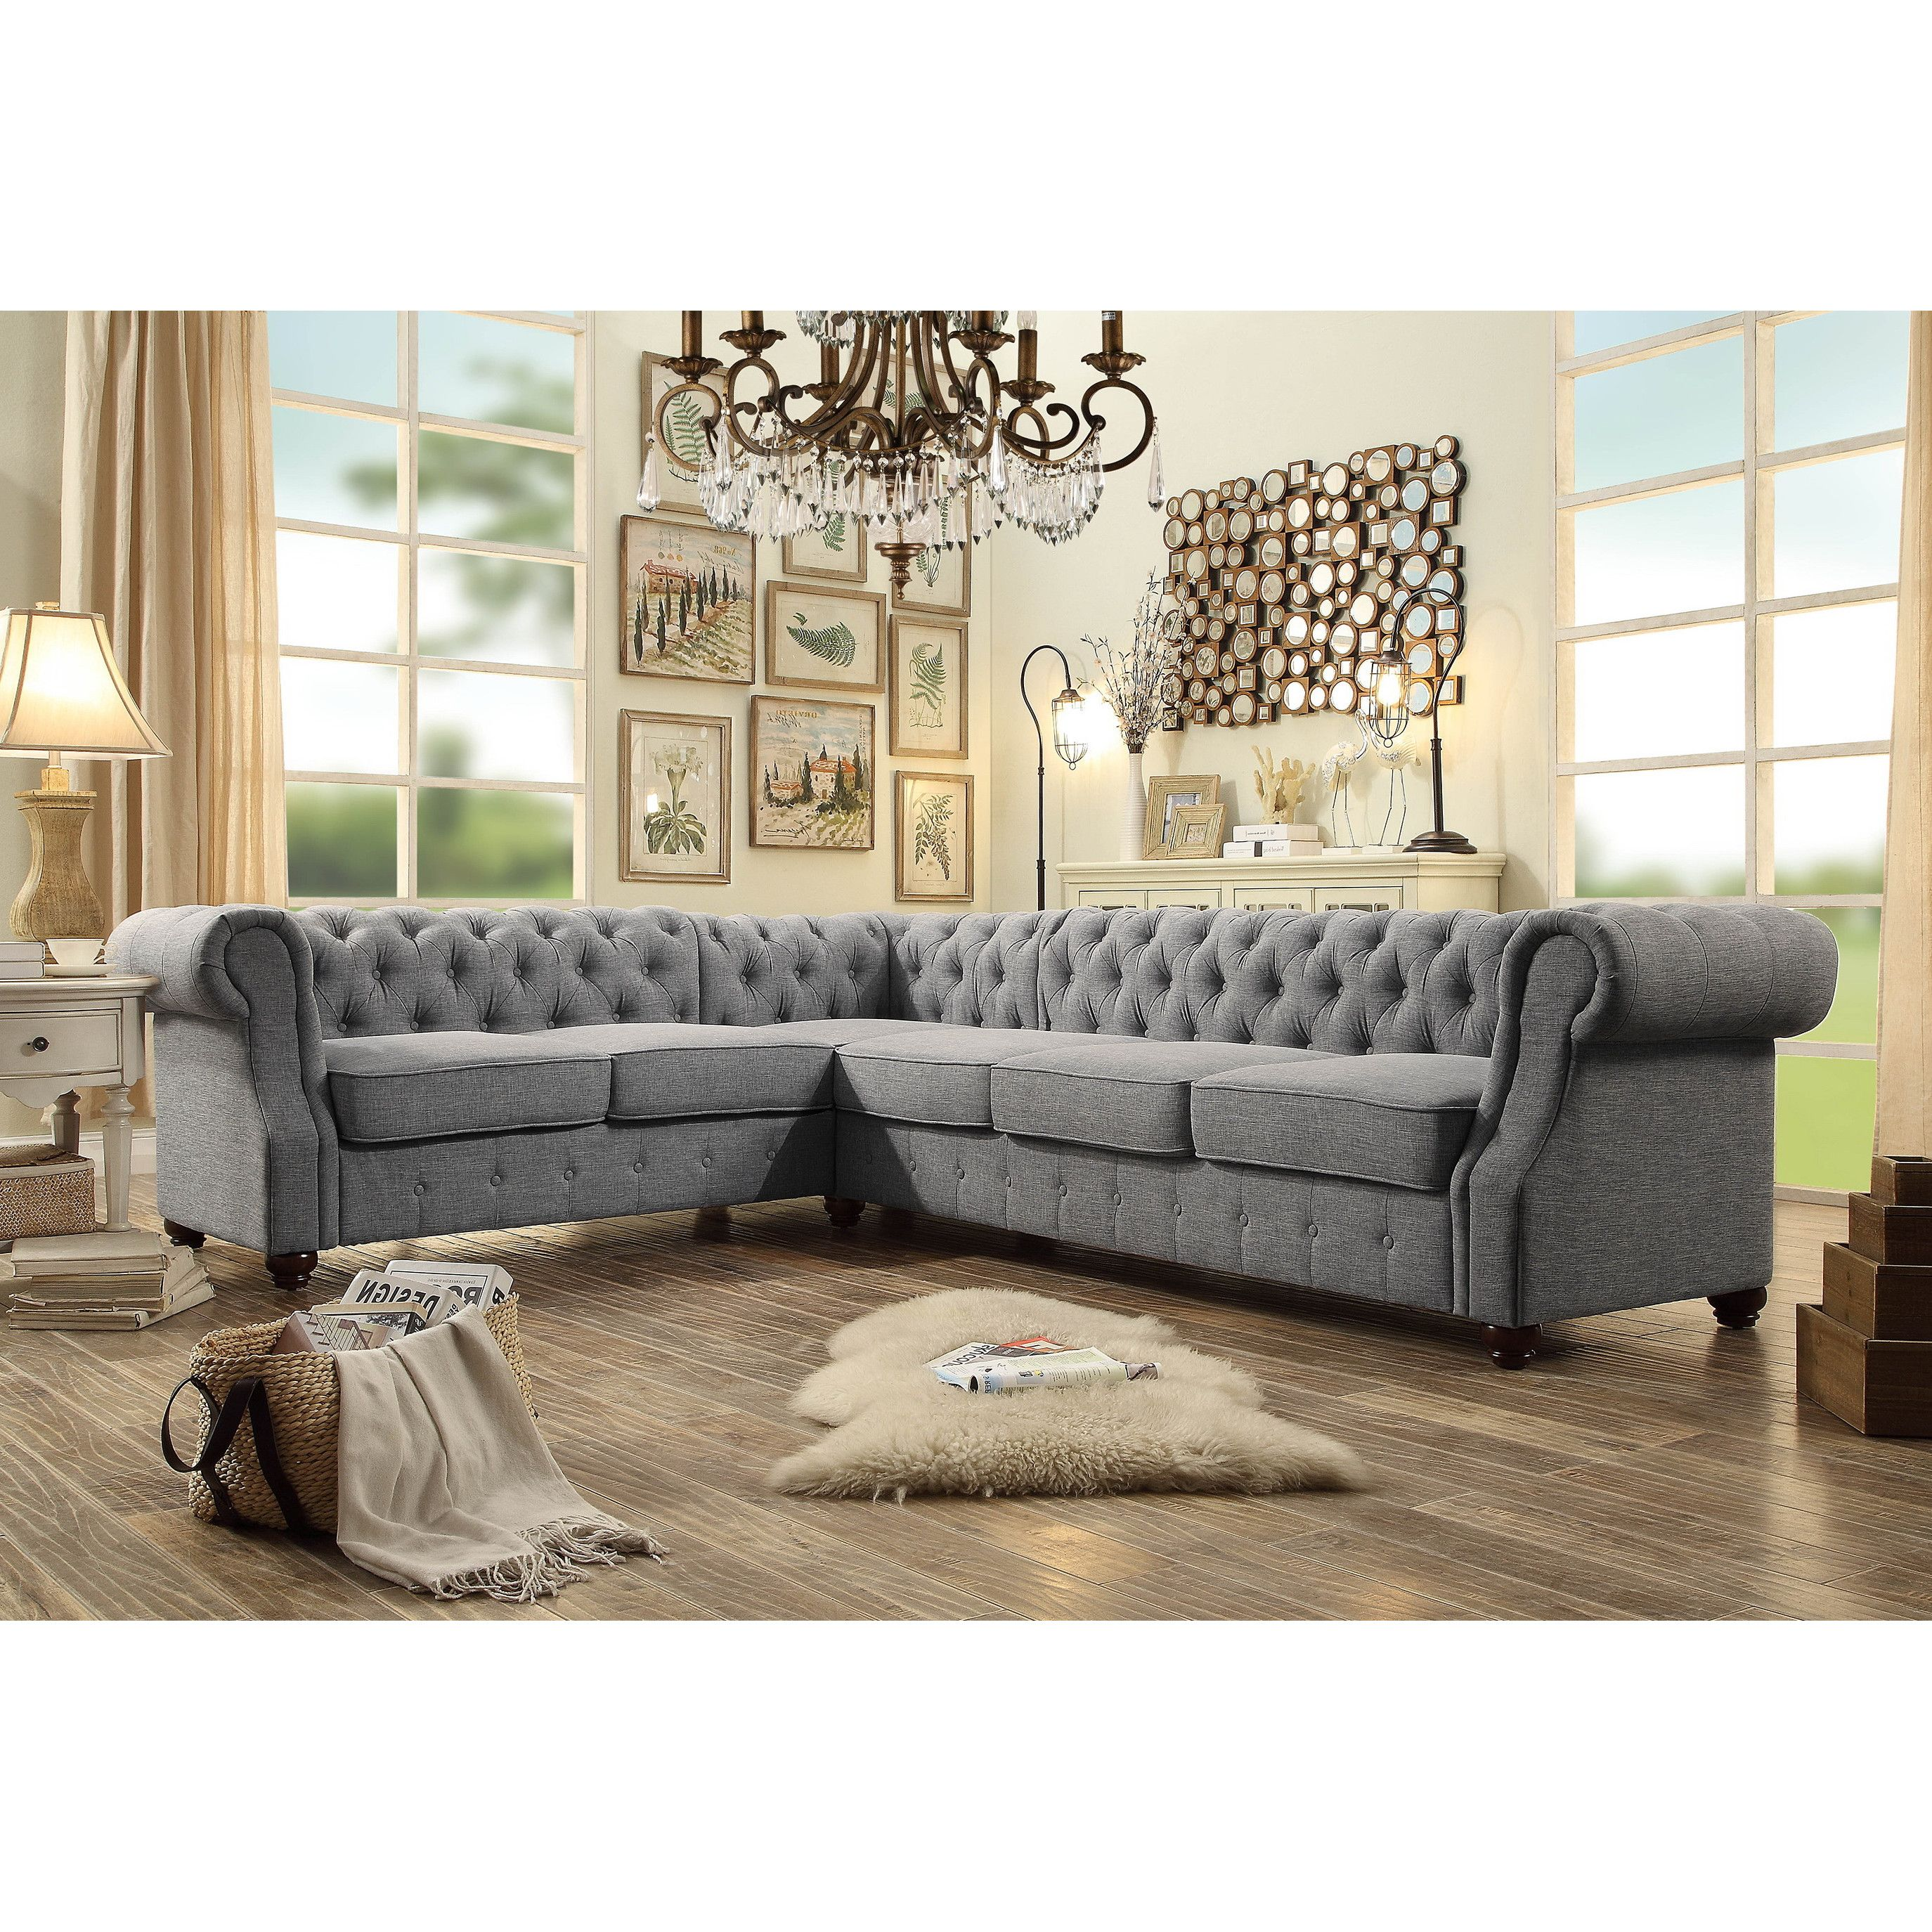 Mulhouse Furniture Olivia Sectional Sectional Sofa Living Room Designs Tufted Sectional Sofa